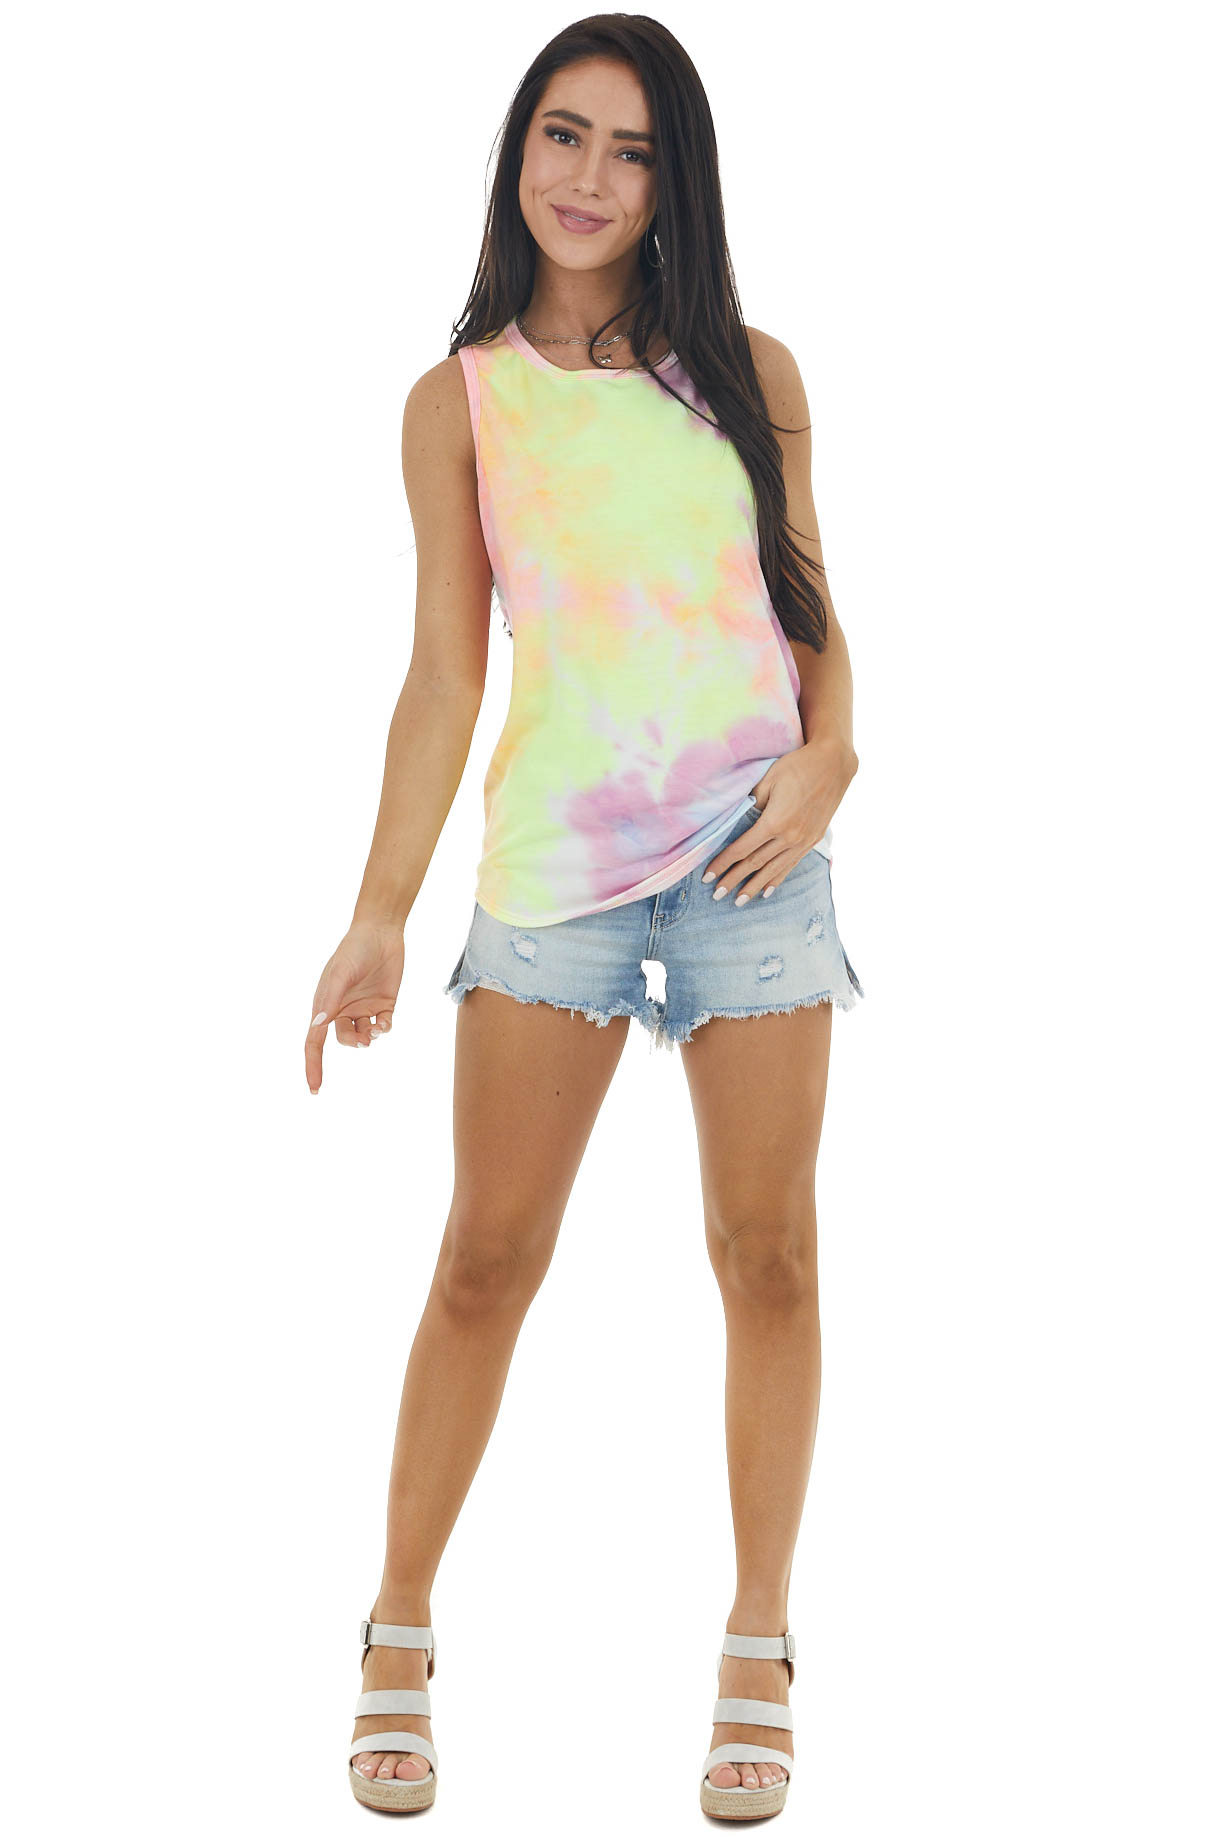 Rainbow Tie Dye Super Soft Tank Top with Rounded Hemline